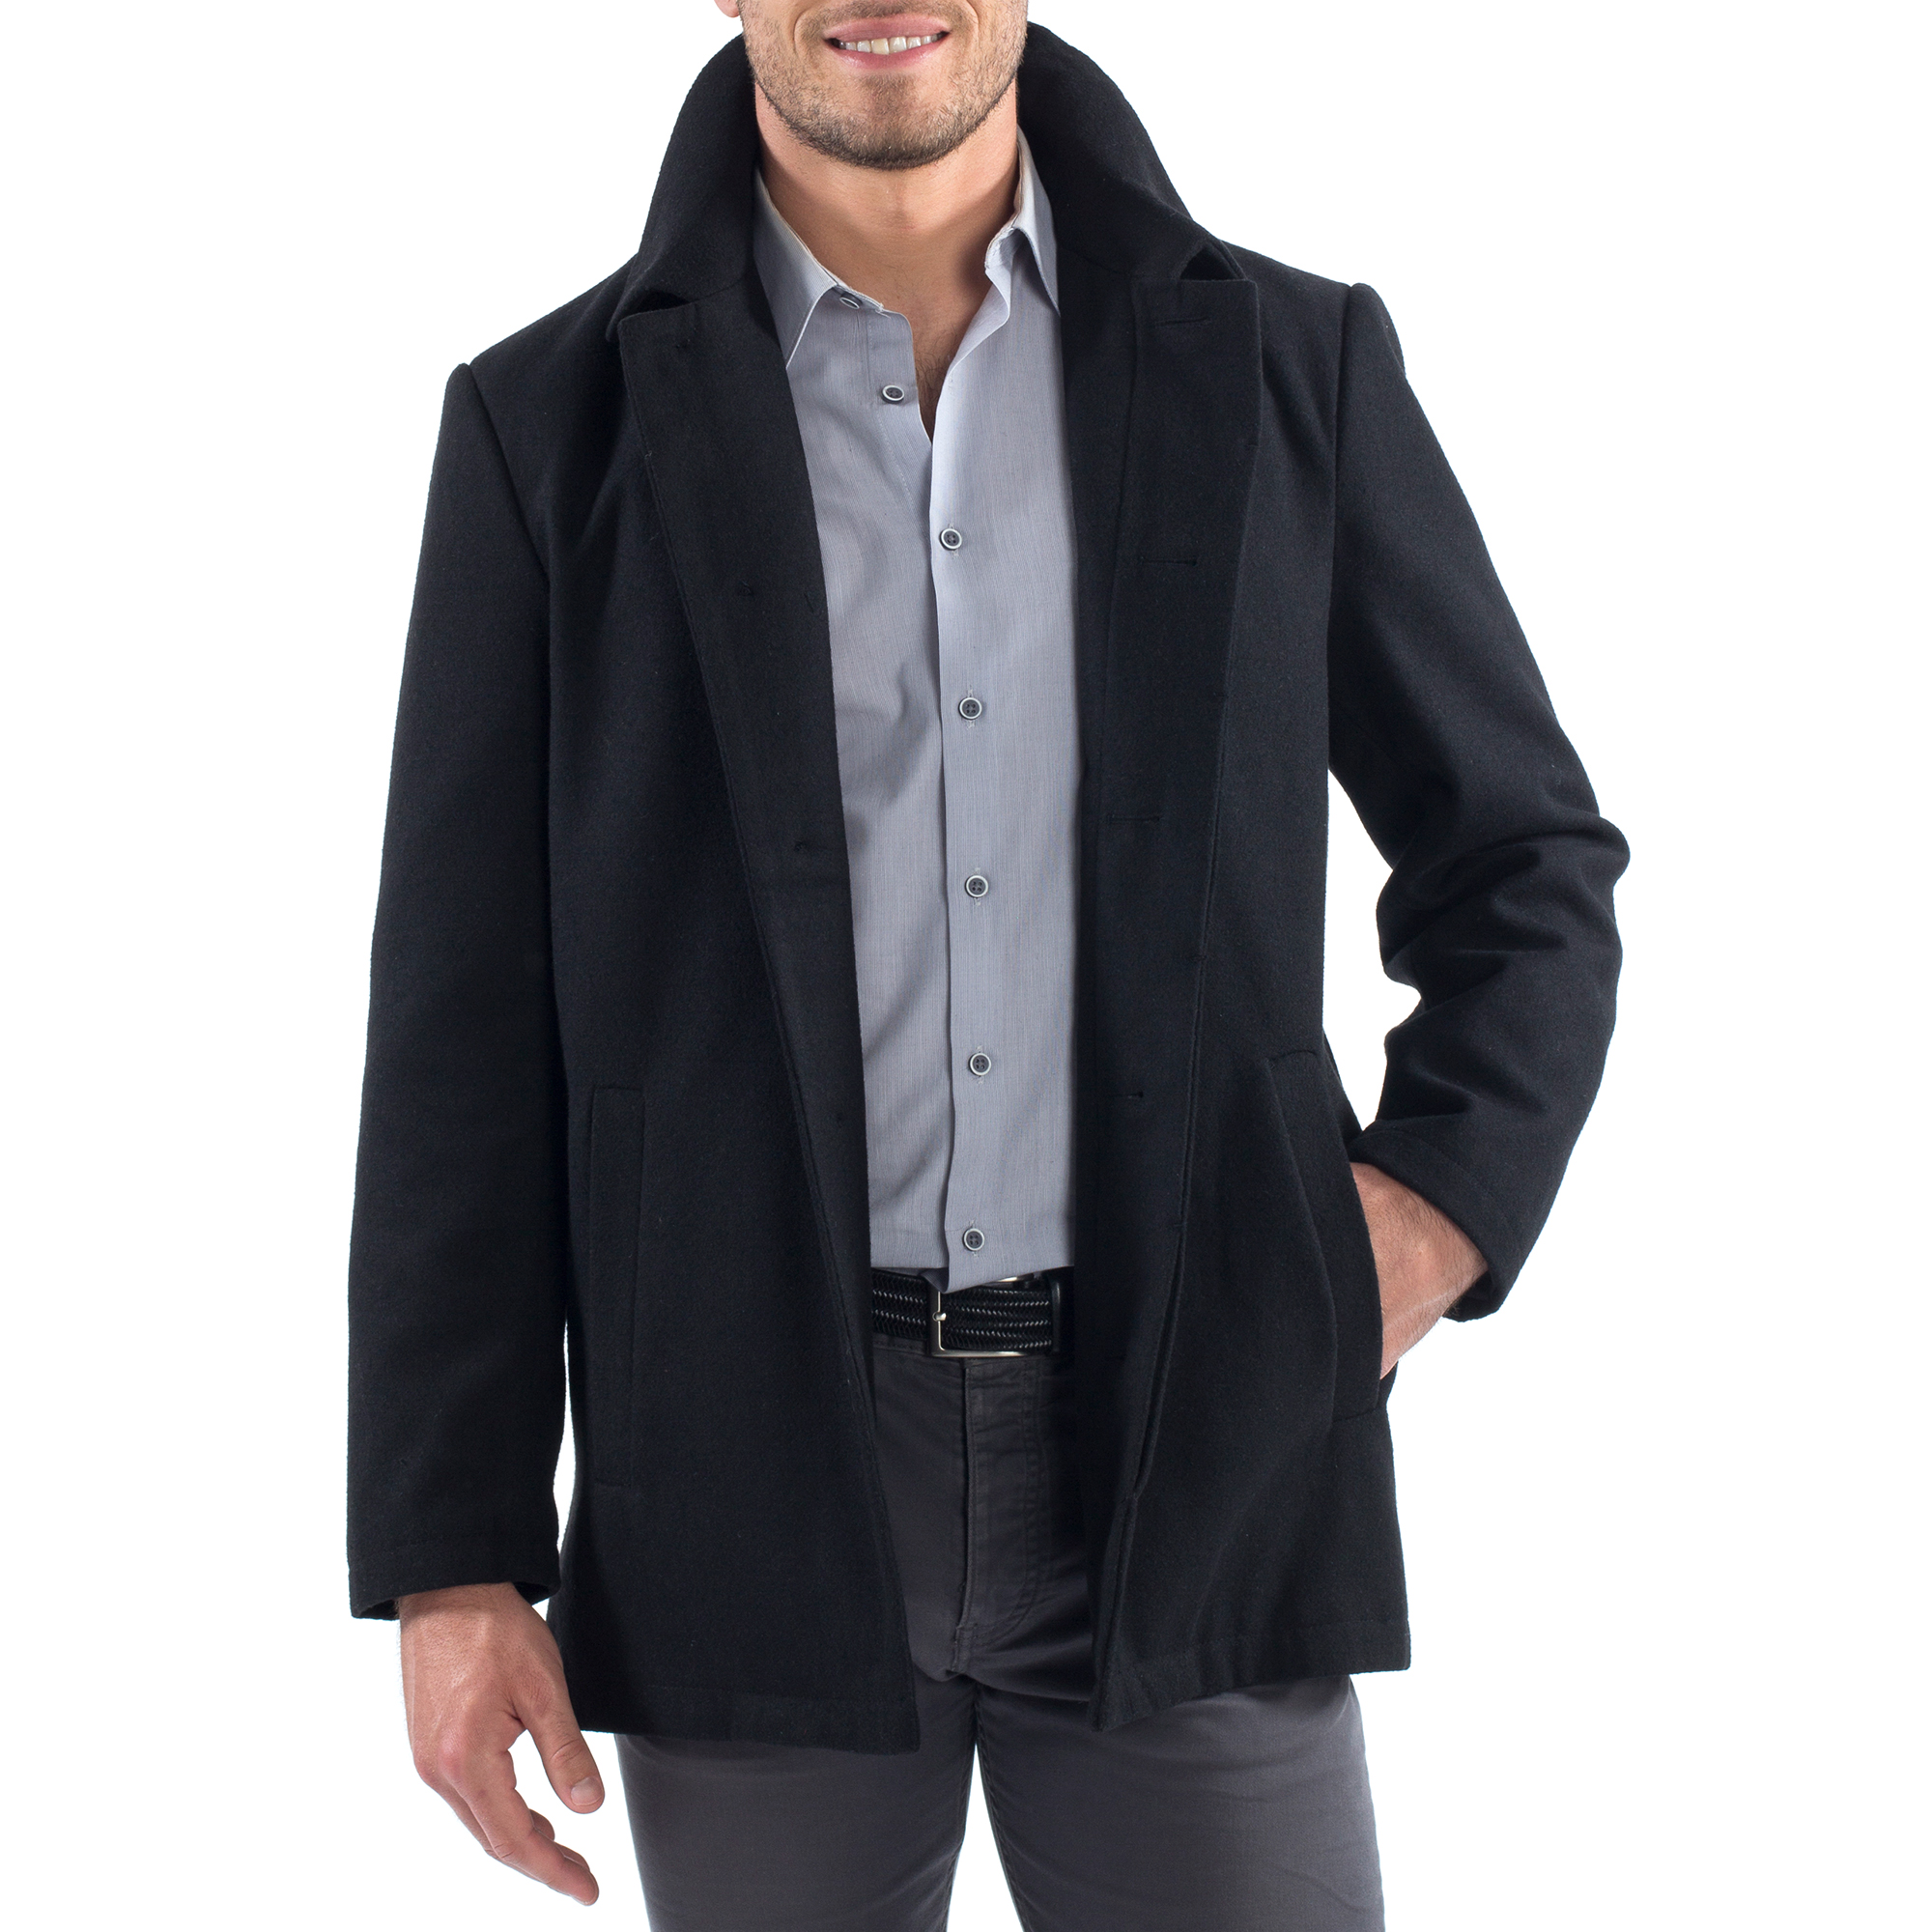 Alpine-Swiss-Vance-Mens-Jacket-Wool-Blend-Button-Up-Coat-Dress-Car-Coat-Blazer thumbnail 15